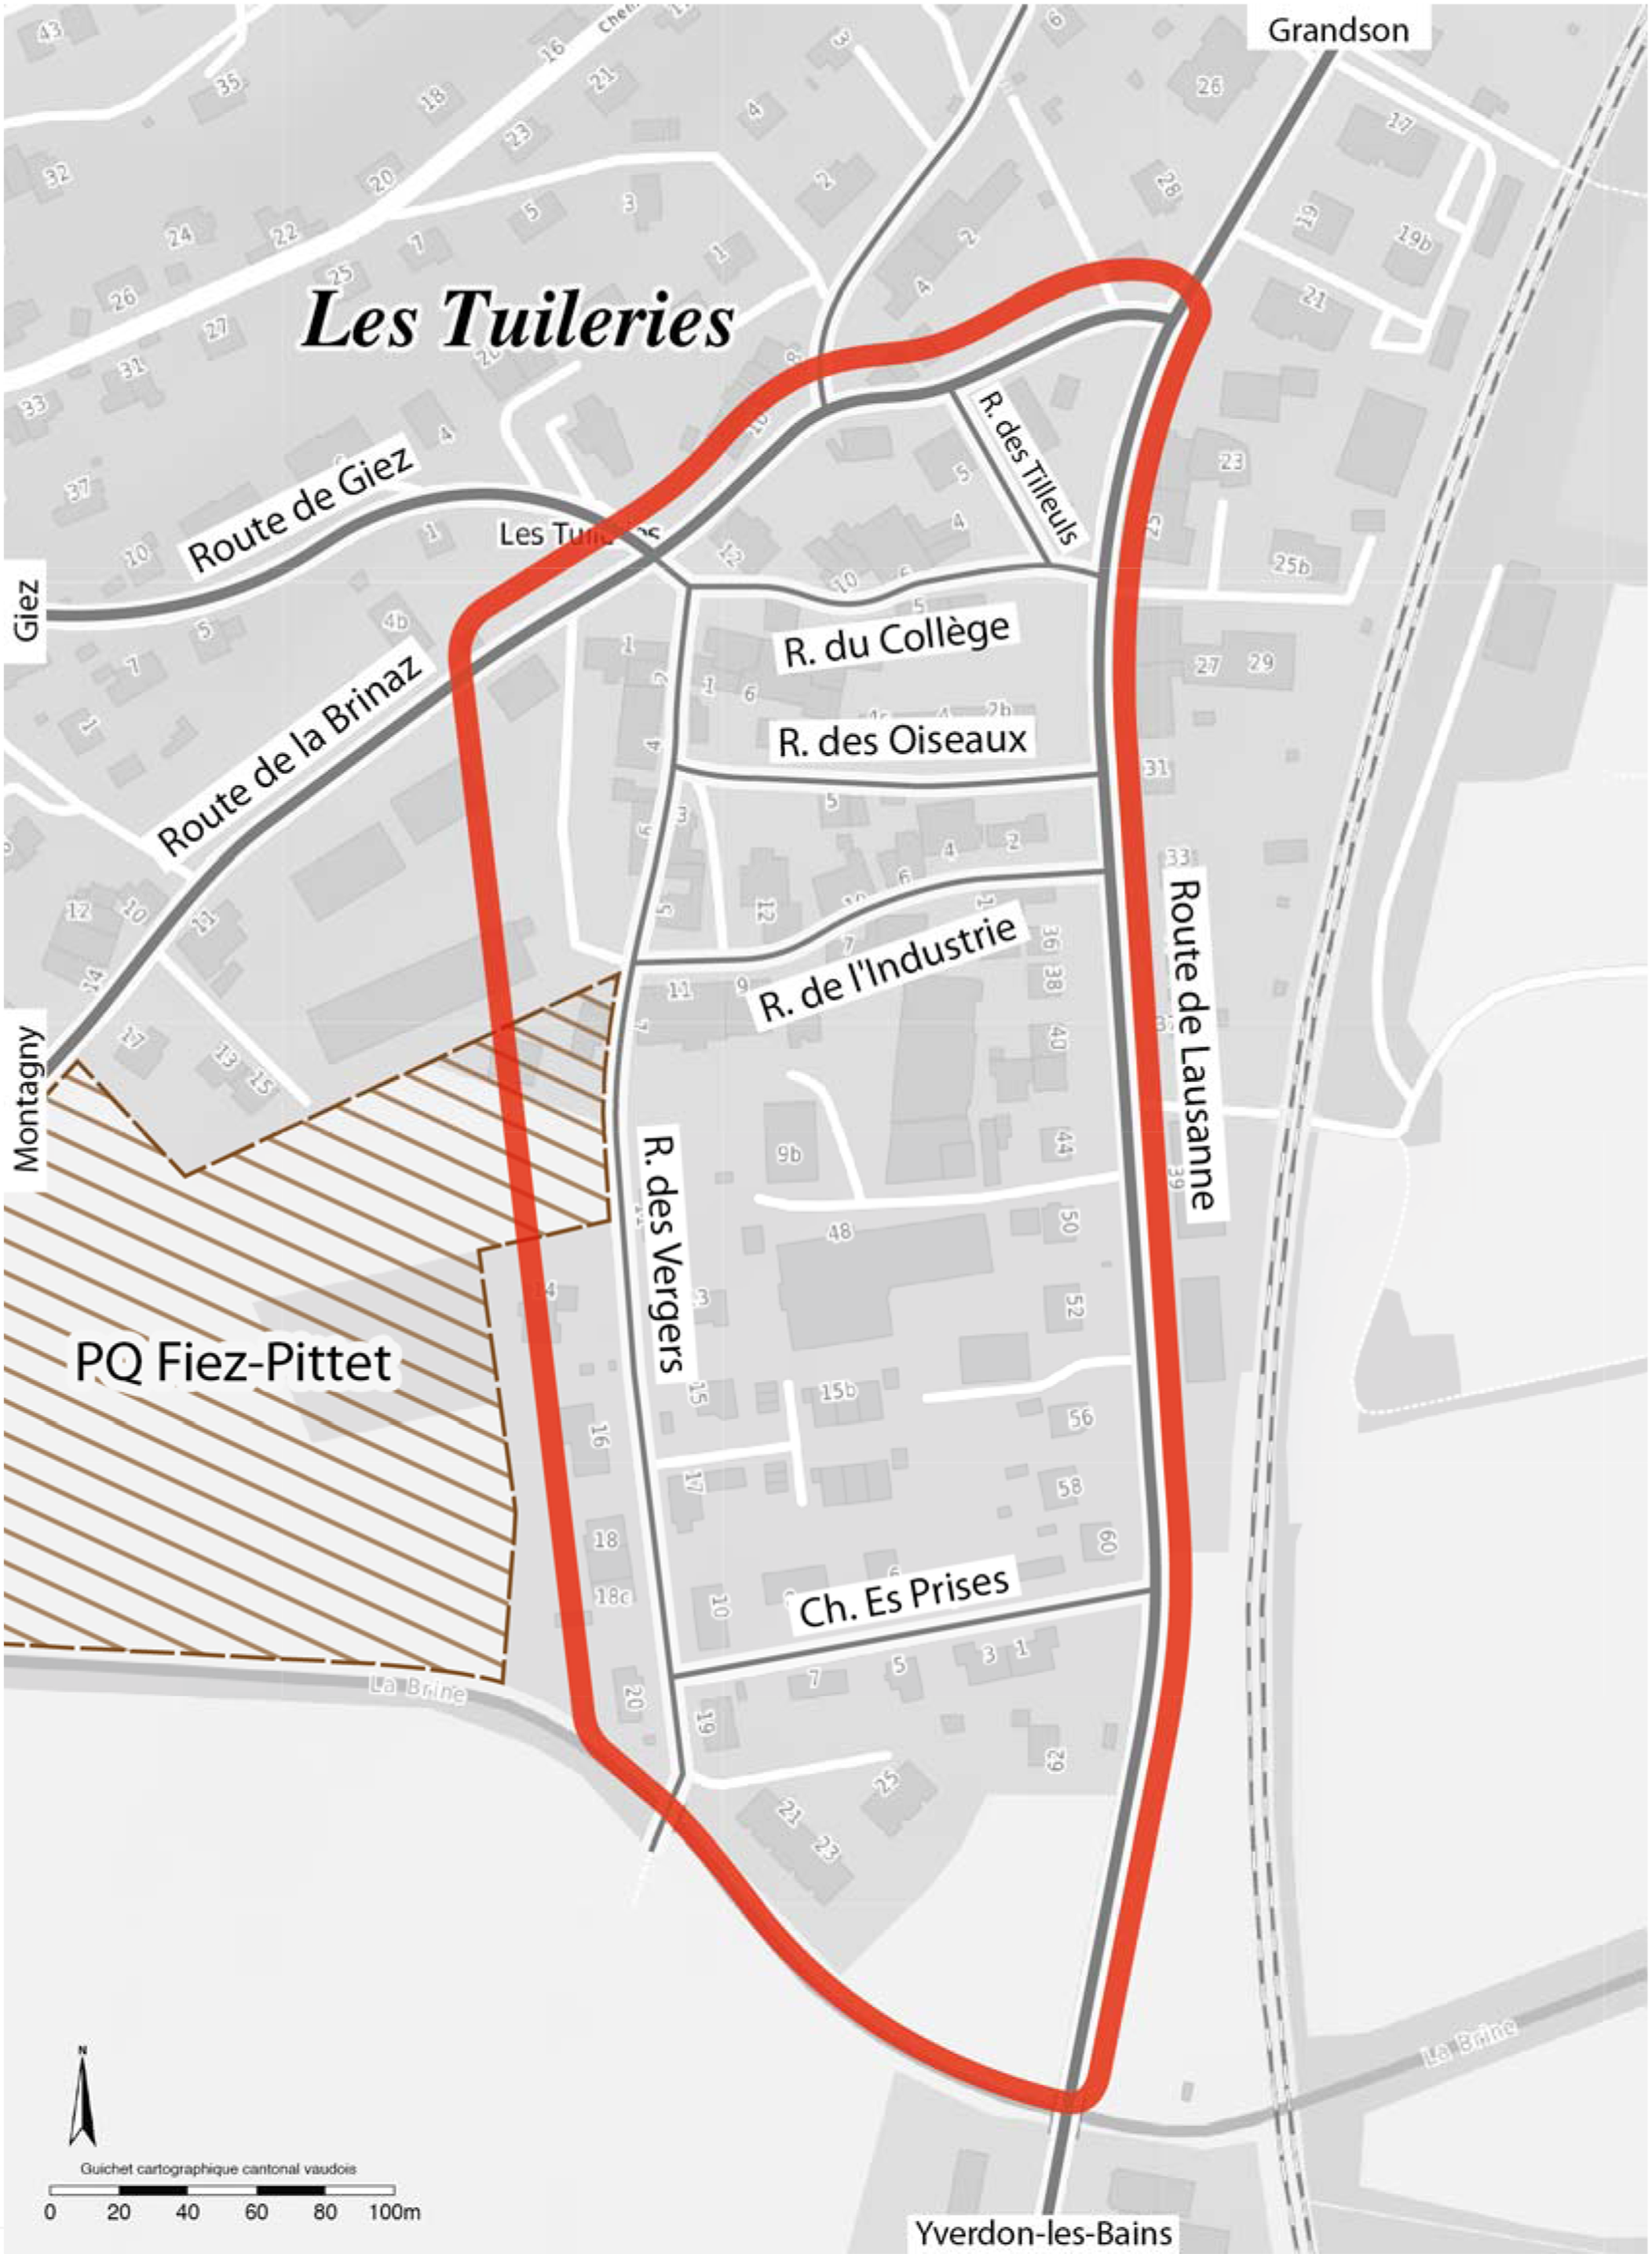 image_grandson_plan_centre_tuileries